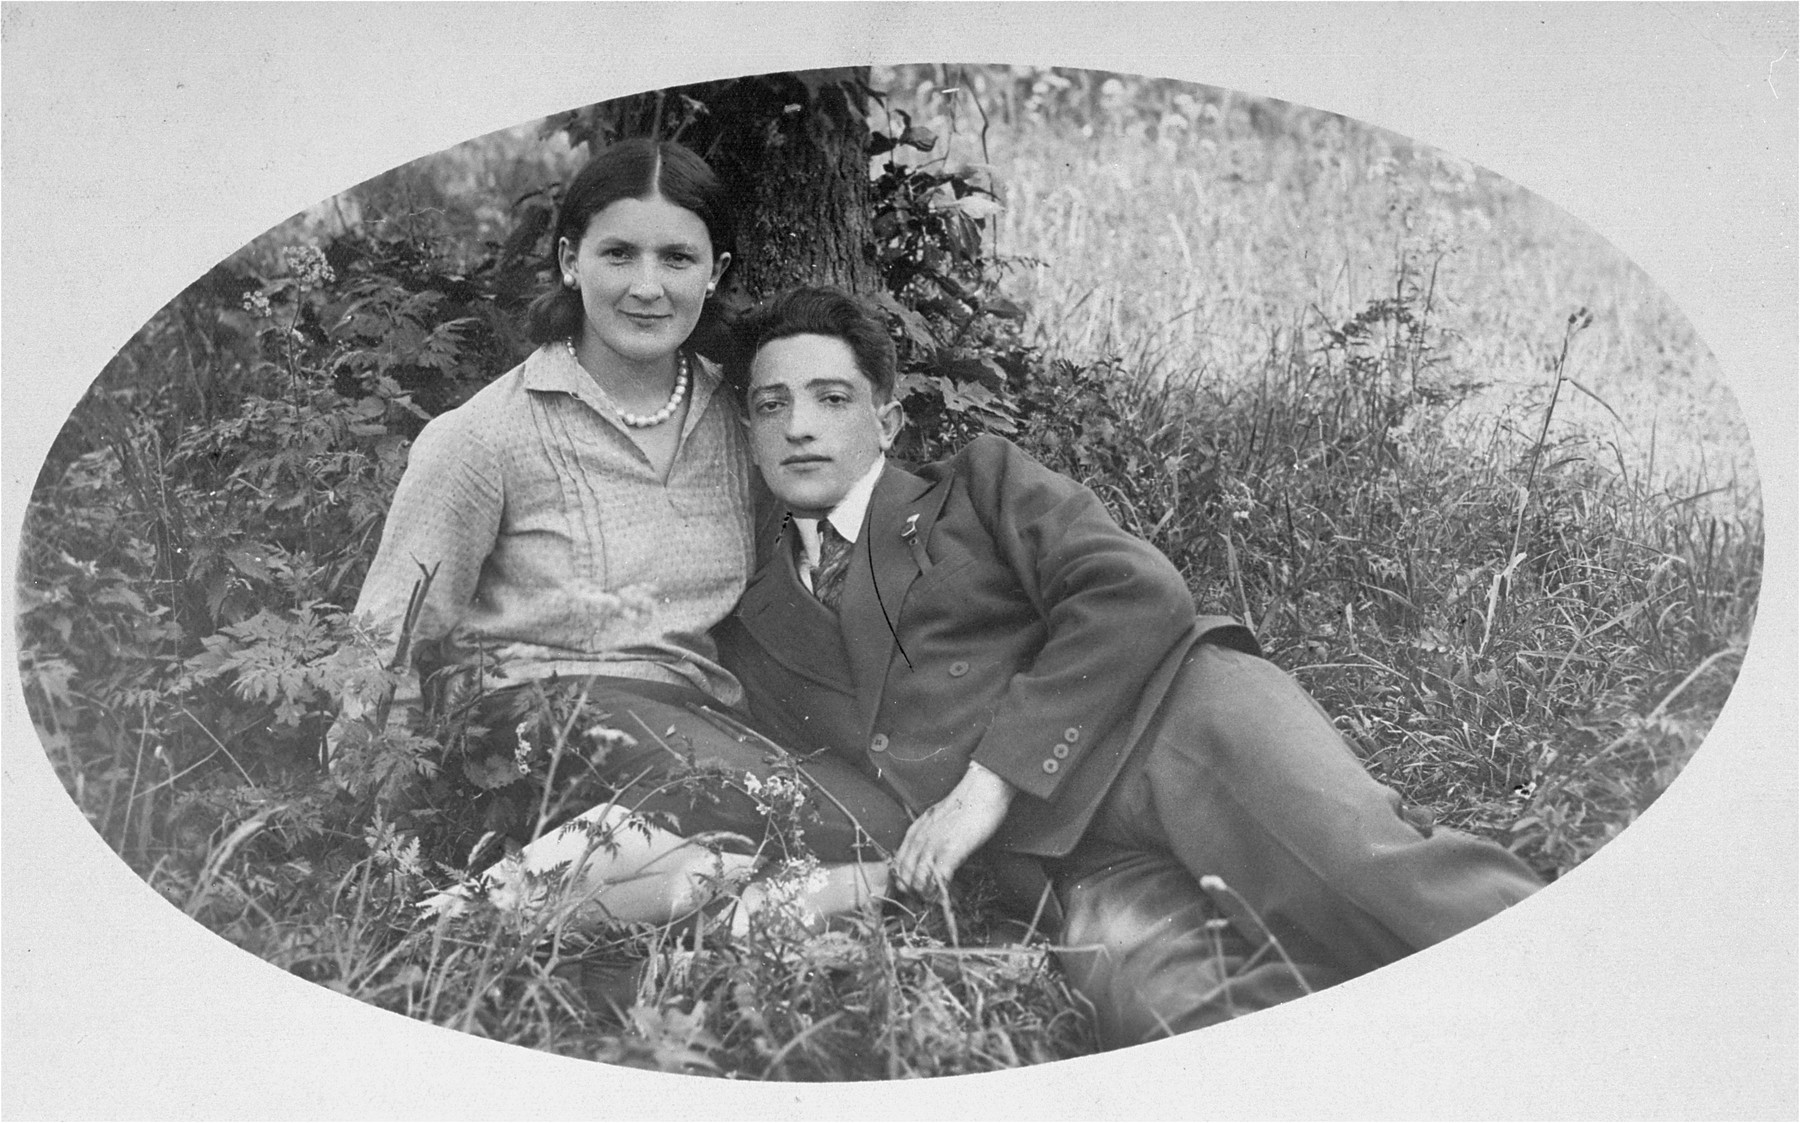 The donor's father, Eliezer Kaplan, poses with a female friend in Lithuania.